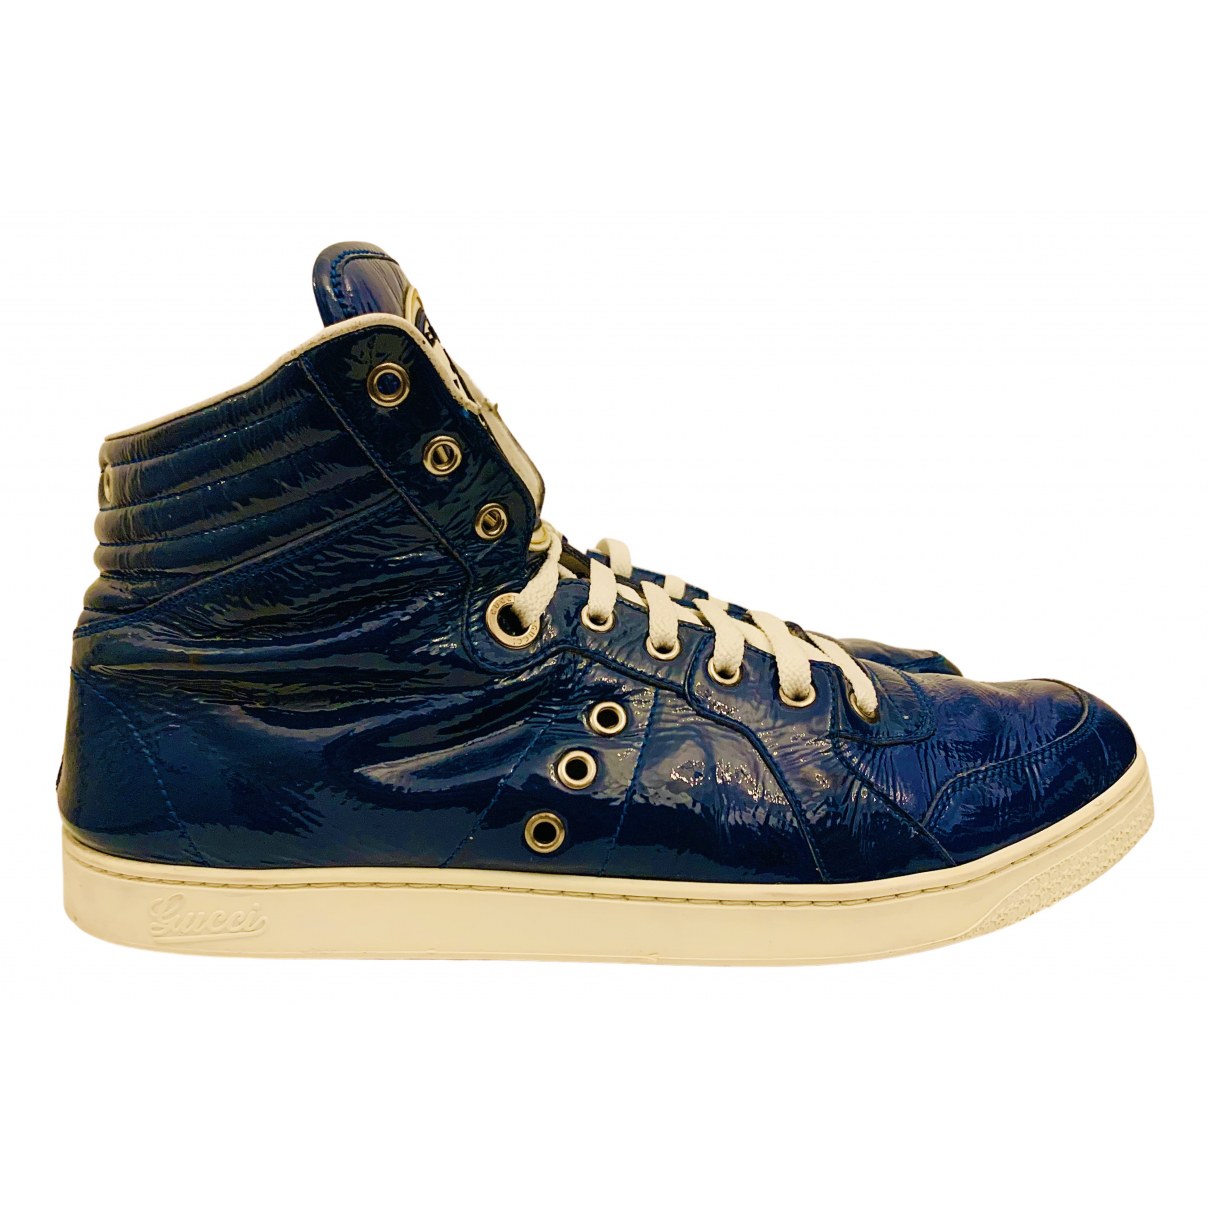 Gucci N Blue Patent leather Trainers for Men 10.5 US